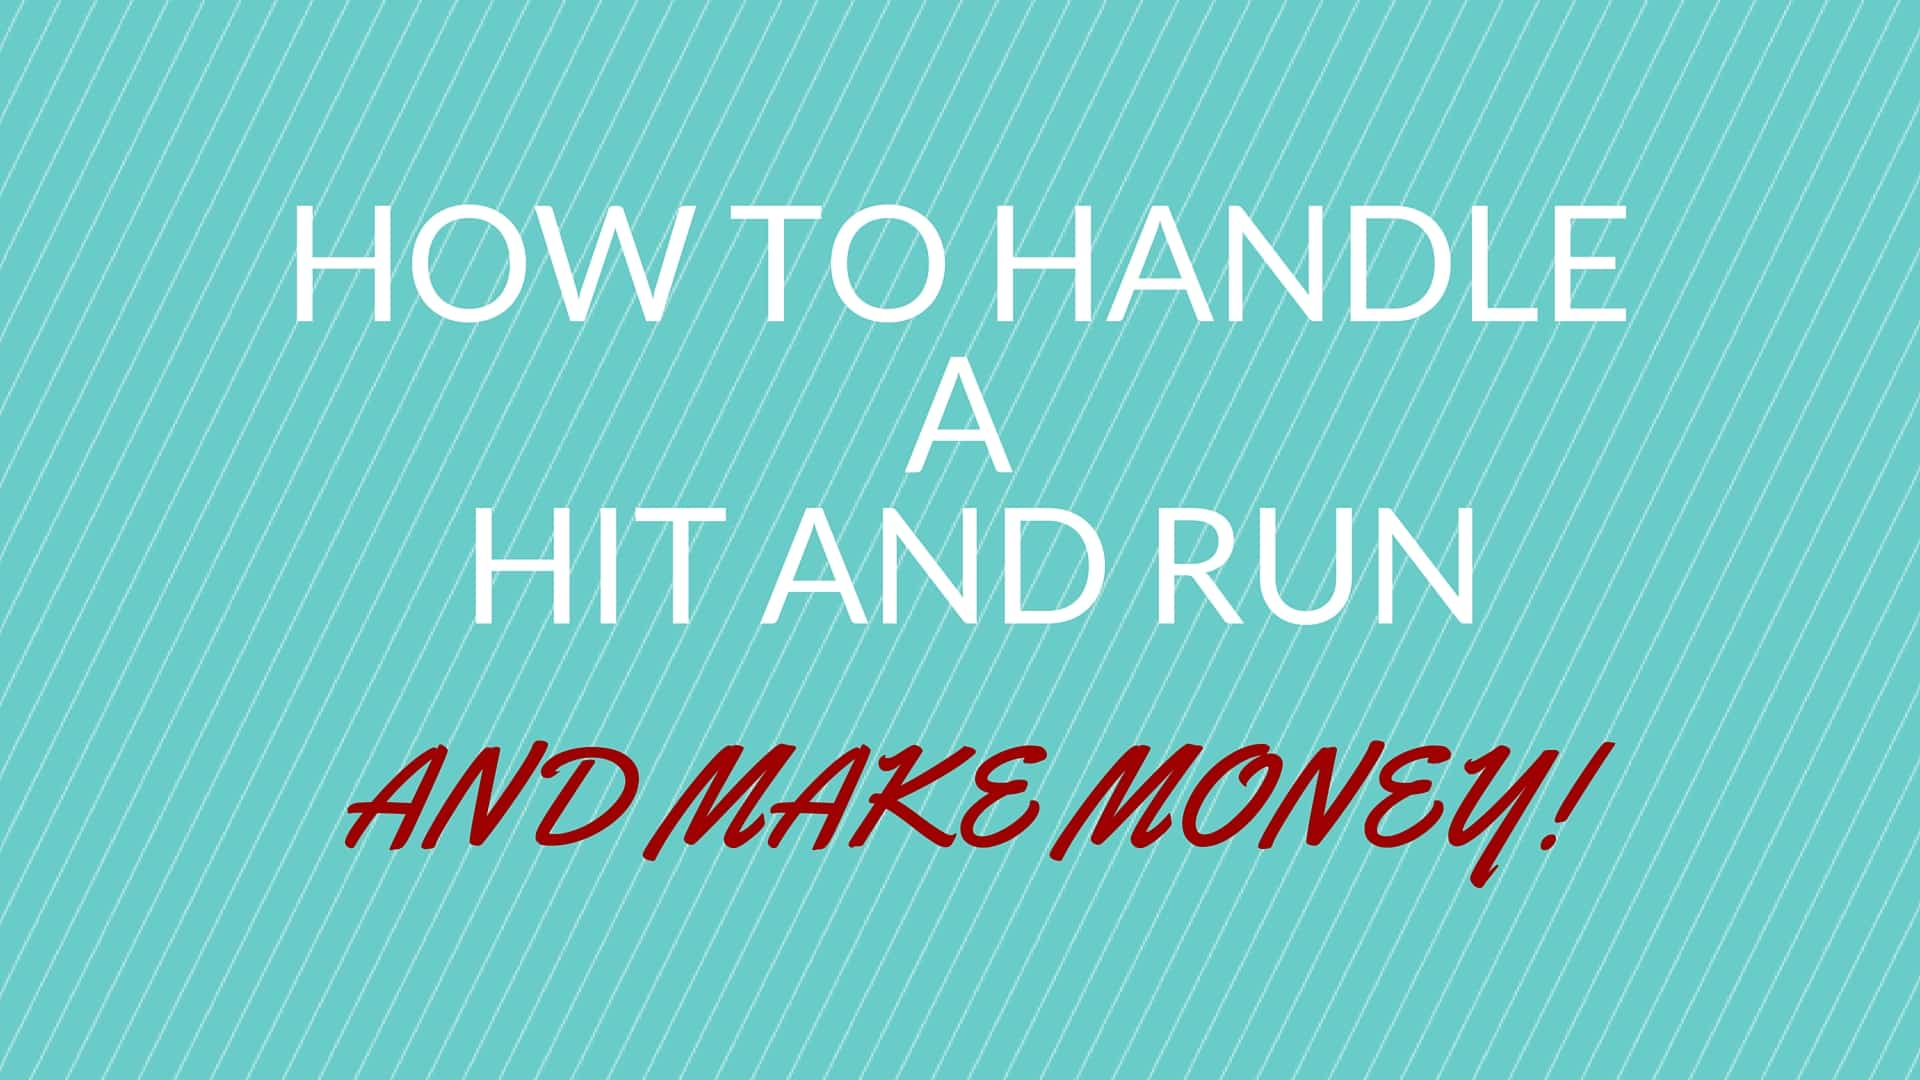 HOW TO HANDLE A HIT AND RUN AND MAKE MONEY